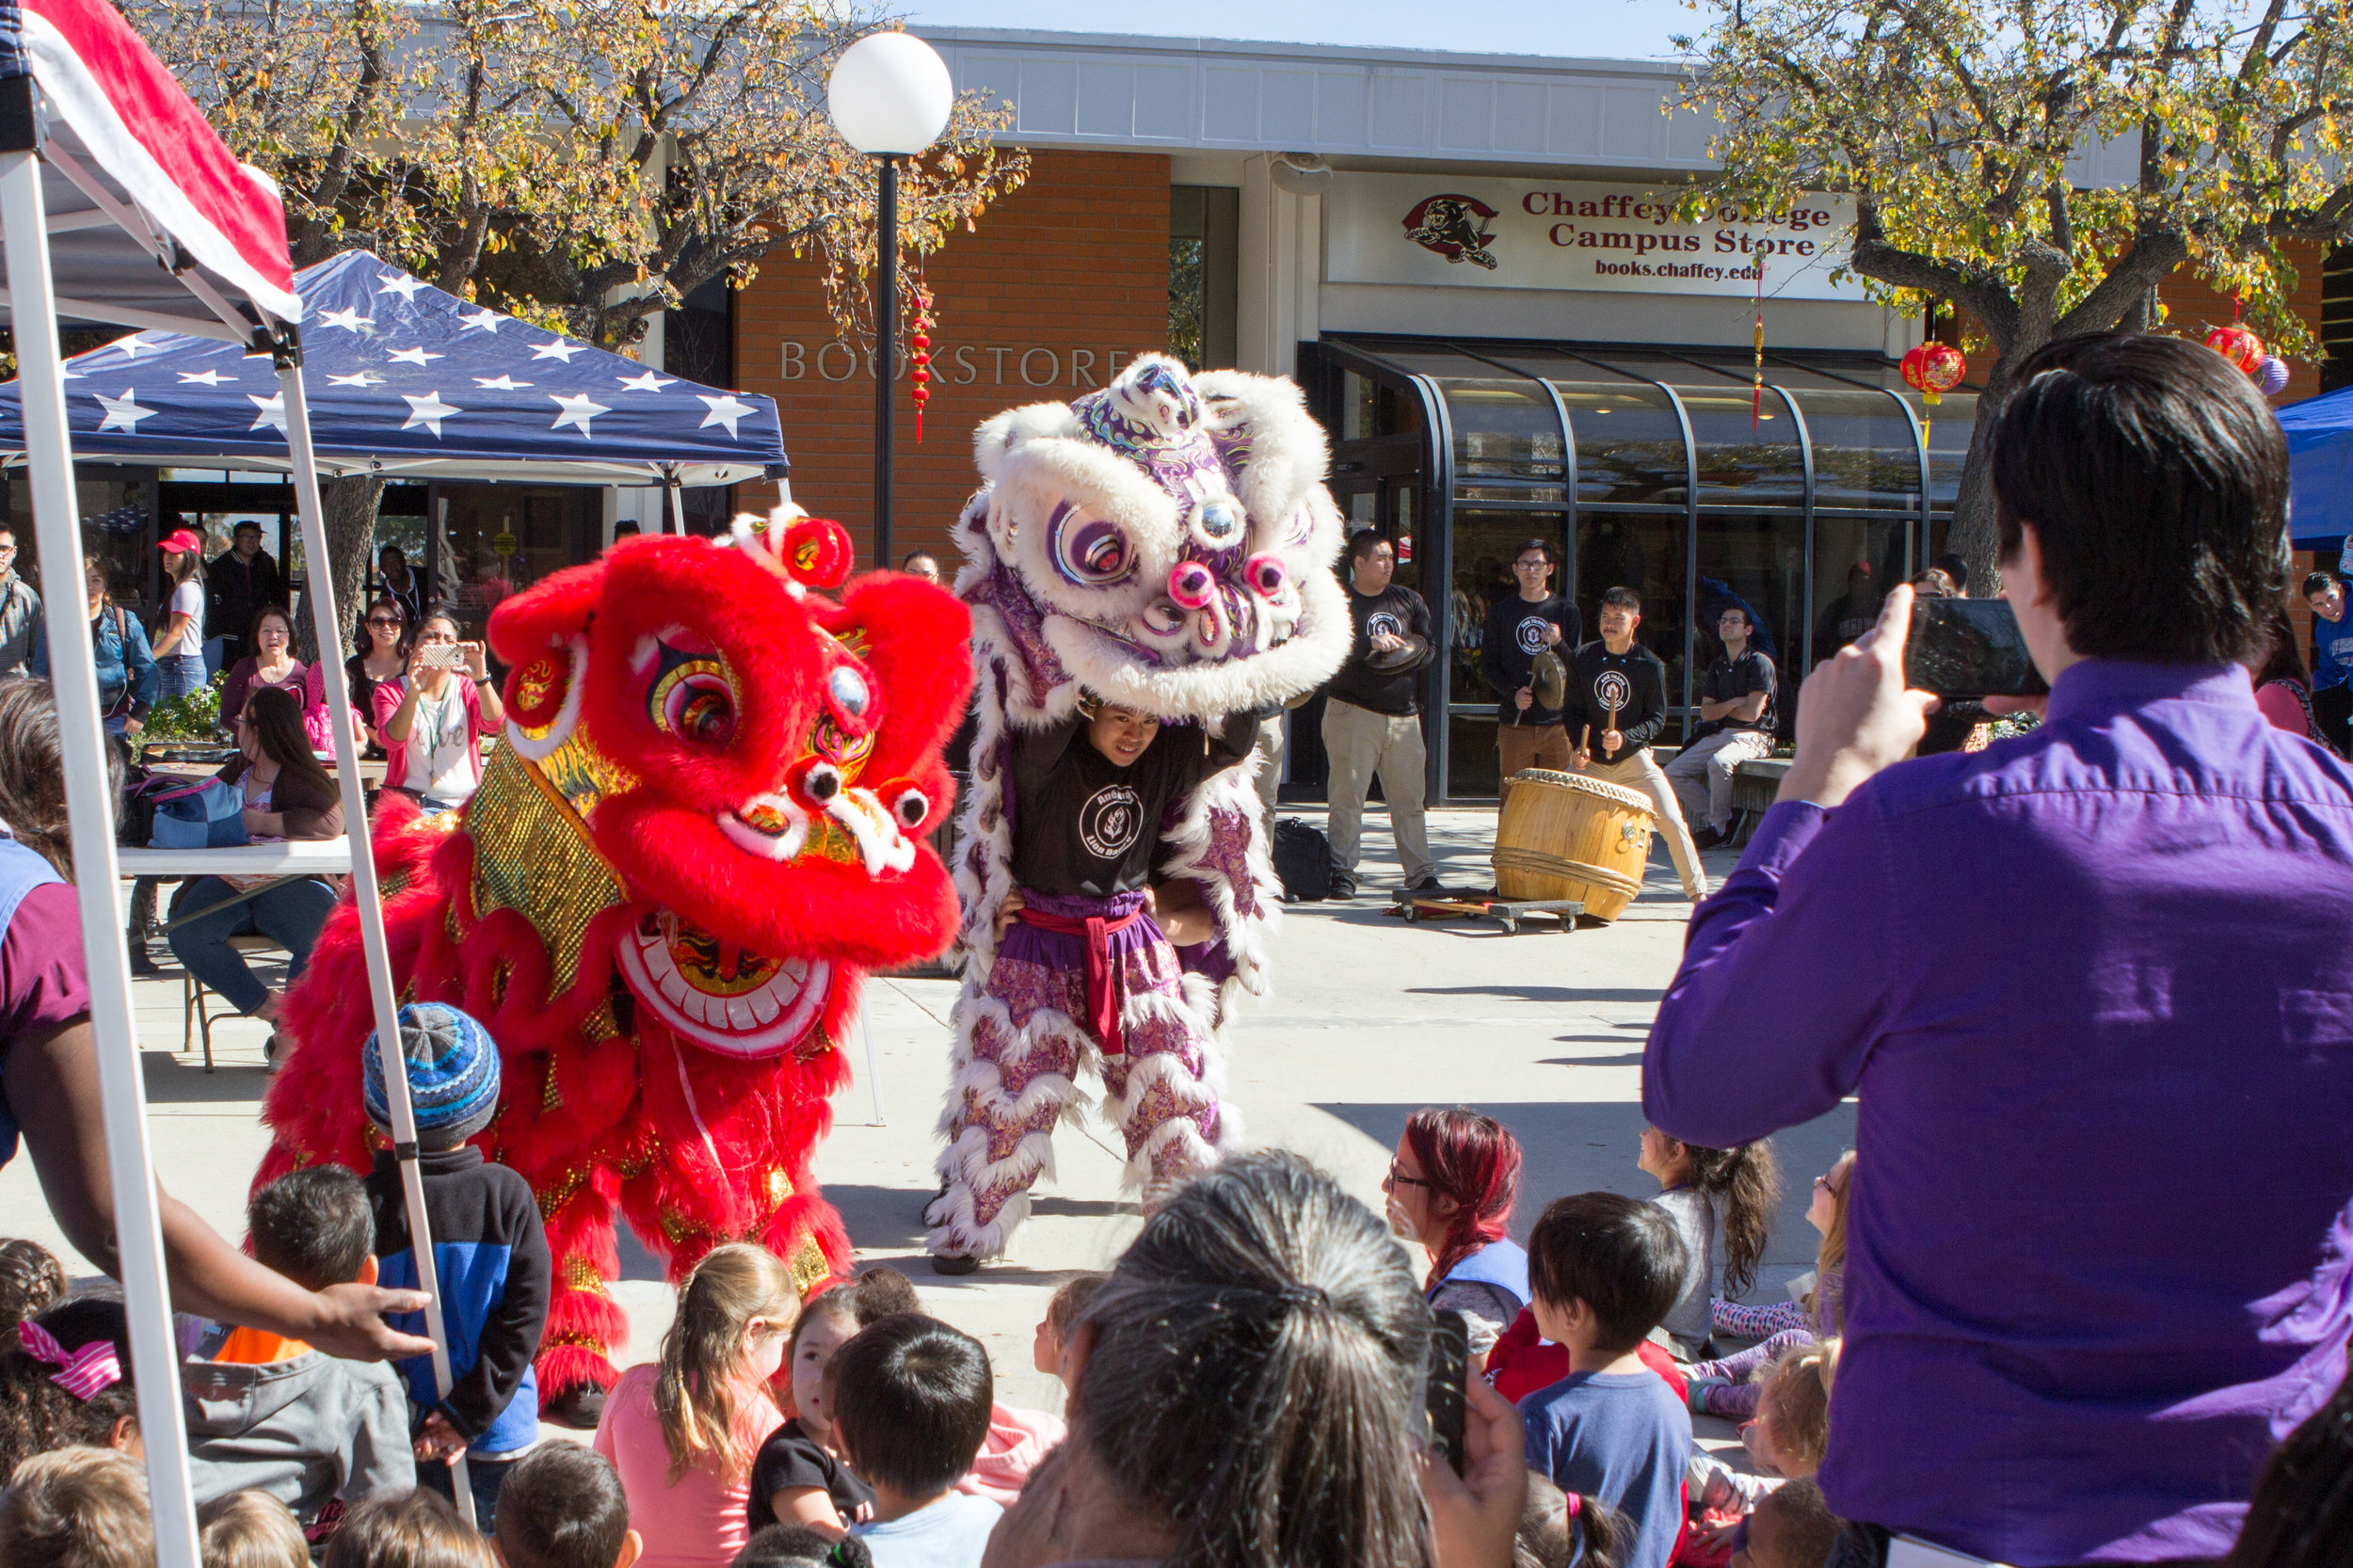 Performers from the Ane Thanh Lion Dance bring their costumes to life with chomping jaws and flapping ears while their musicians play in the background on Wednesday, Feb. 1, 2017. Photo by Christopher Santee.